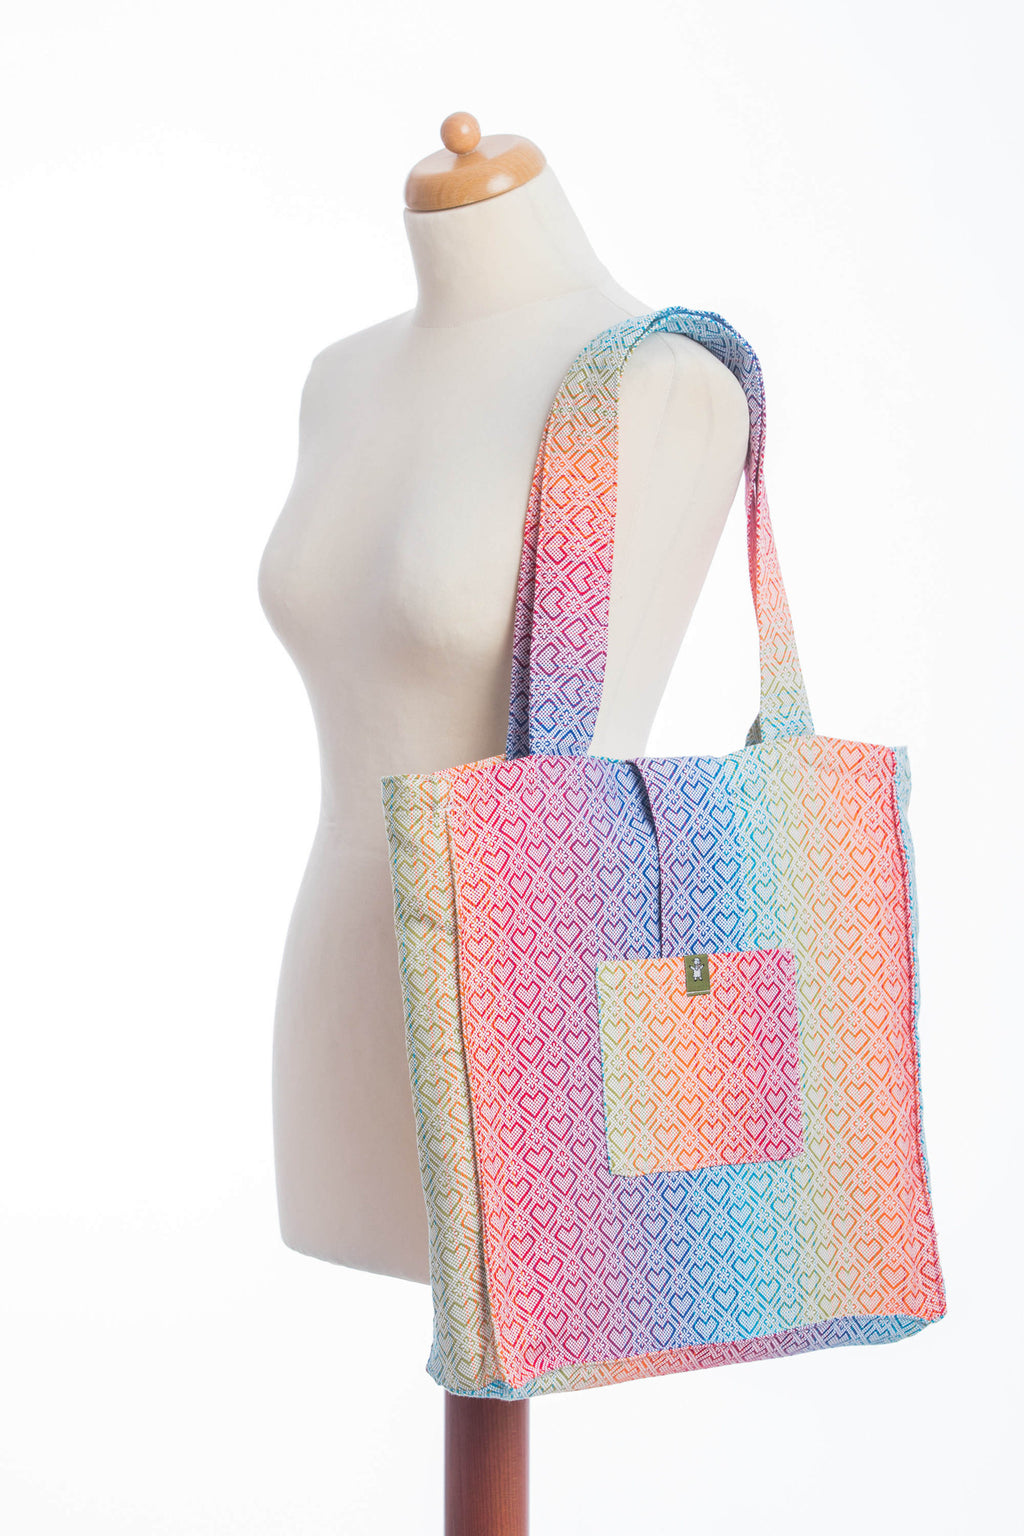 Lenny Lamb Big Love Rainbow Shoulder Bag